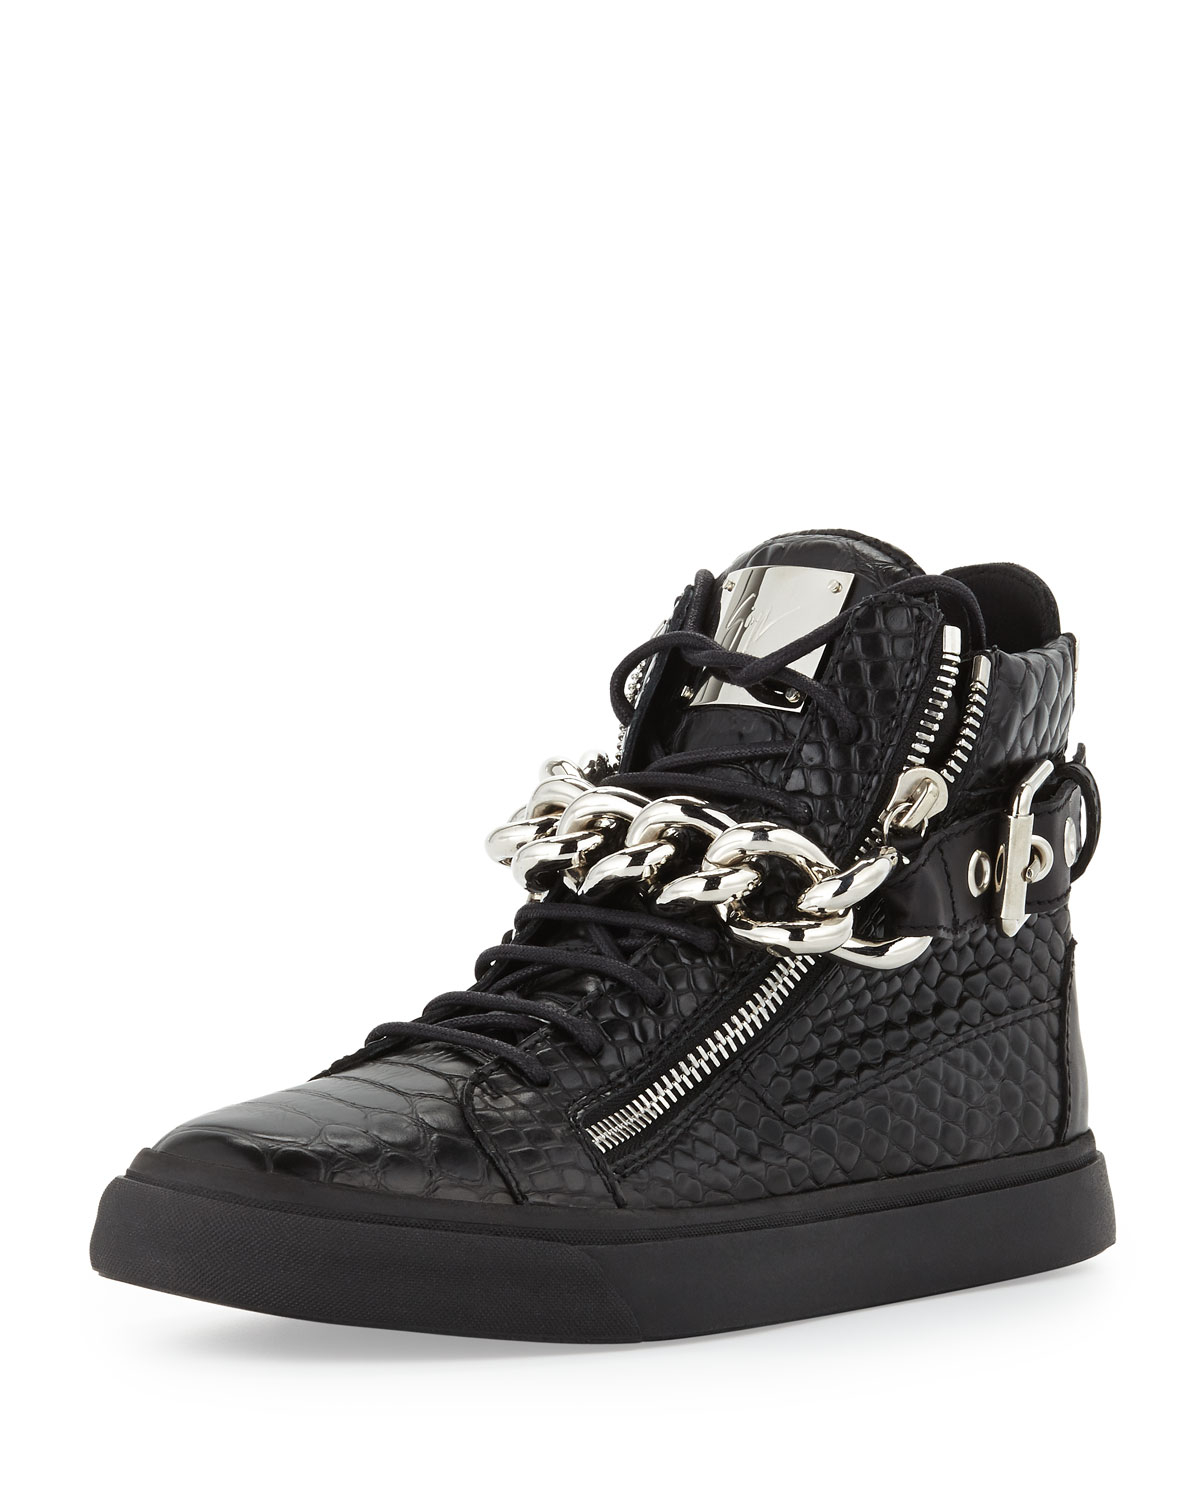 Get free shipping on Versace Colorblock Chain Reaction Sneakers at Neiman Marcus. Shop the latest luxury fashions from top designers.